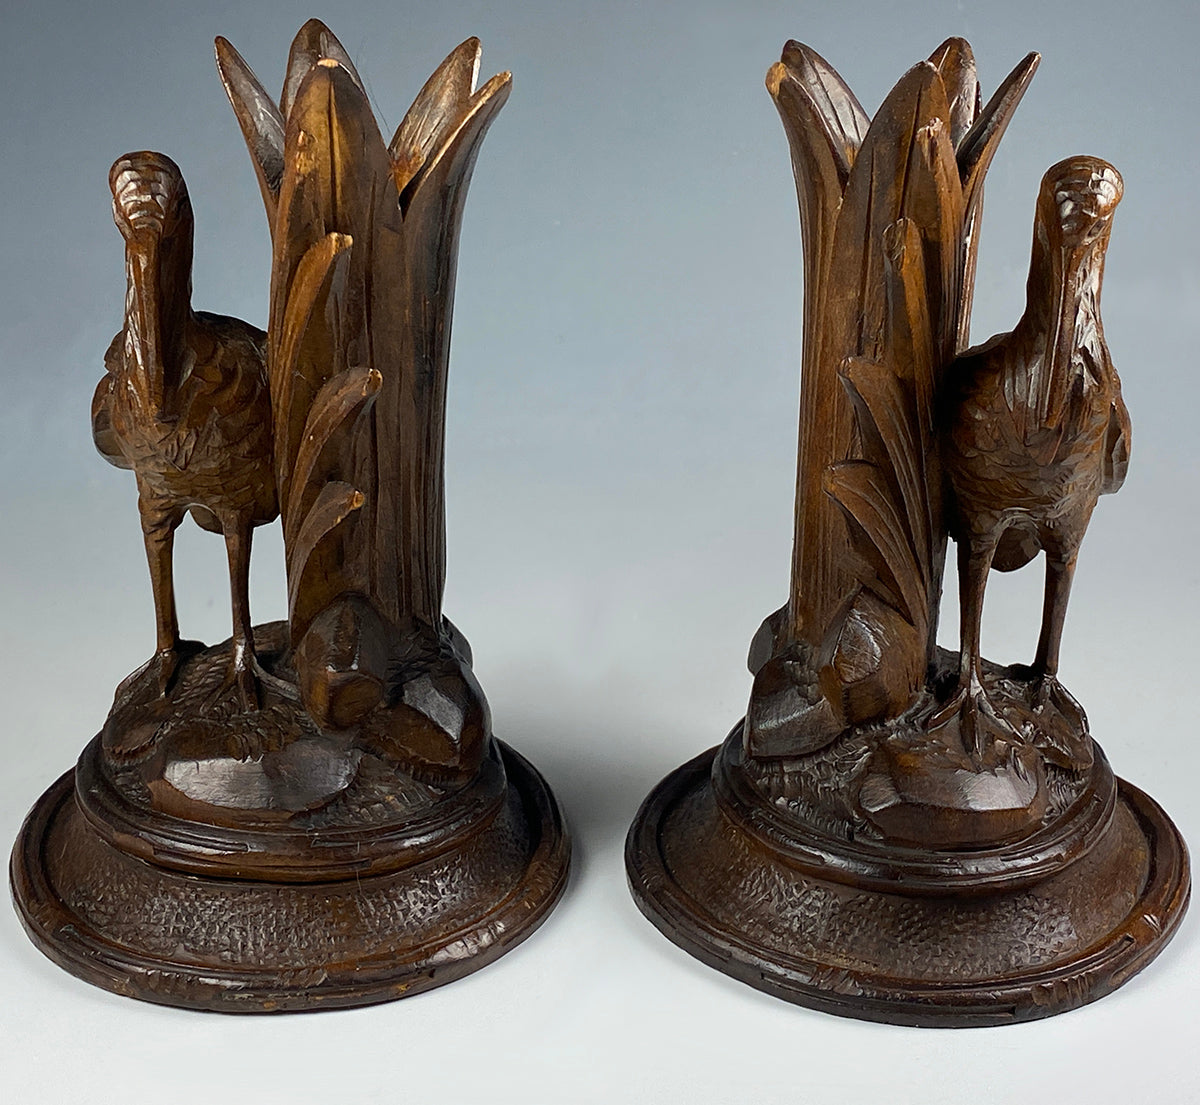 Antique Swiss HC Black Forest Epergne or Candle Stands, Pair of Crane Figures